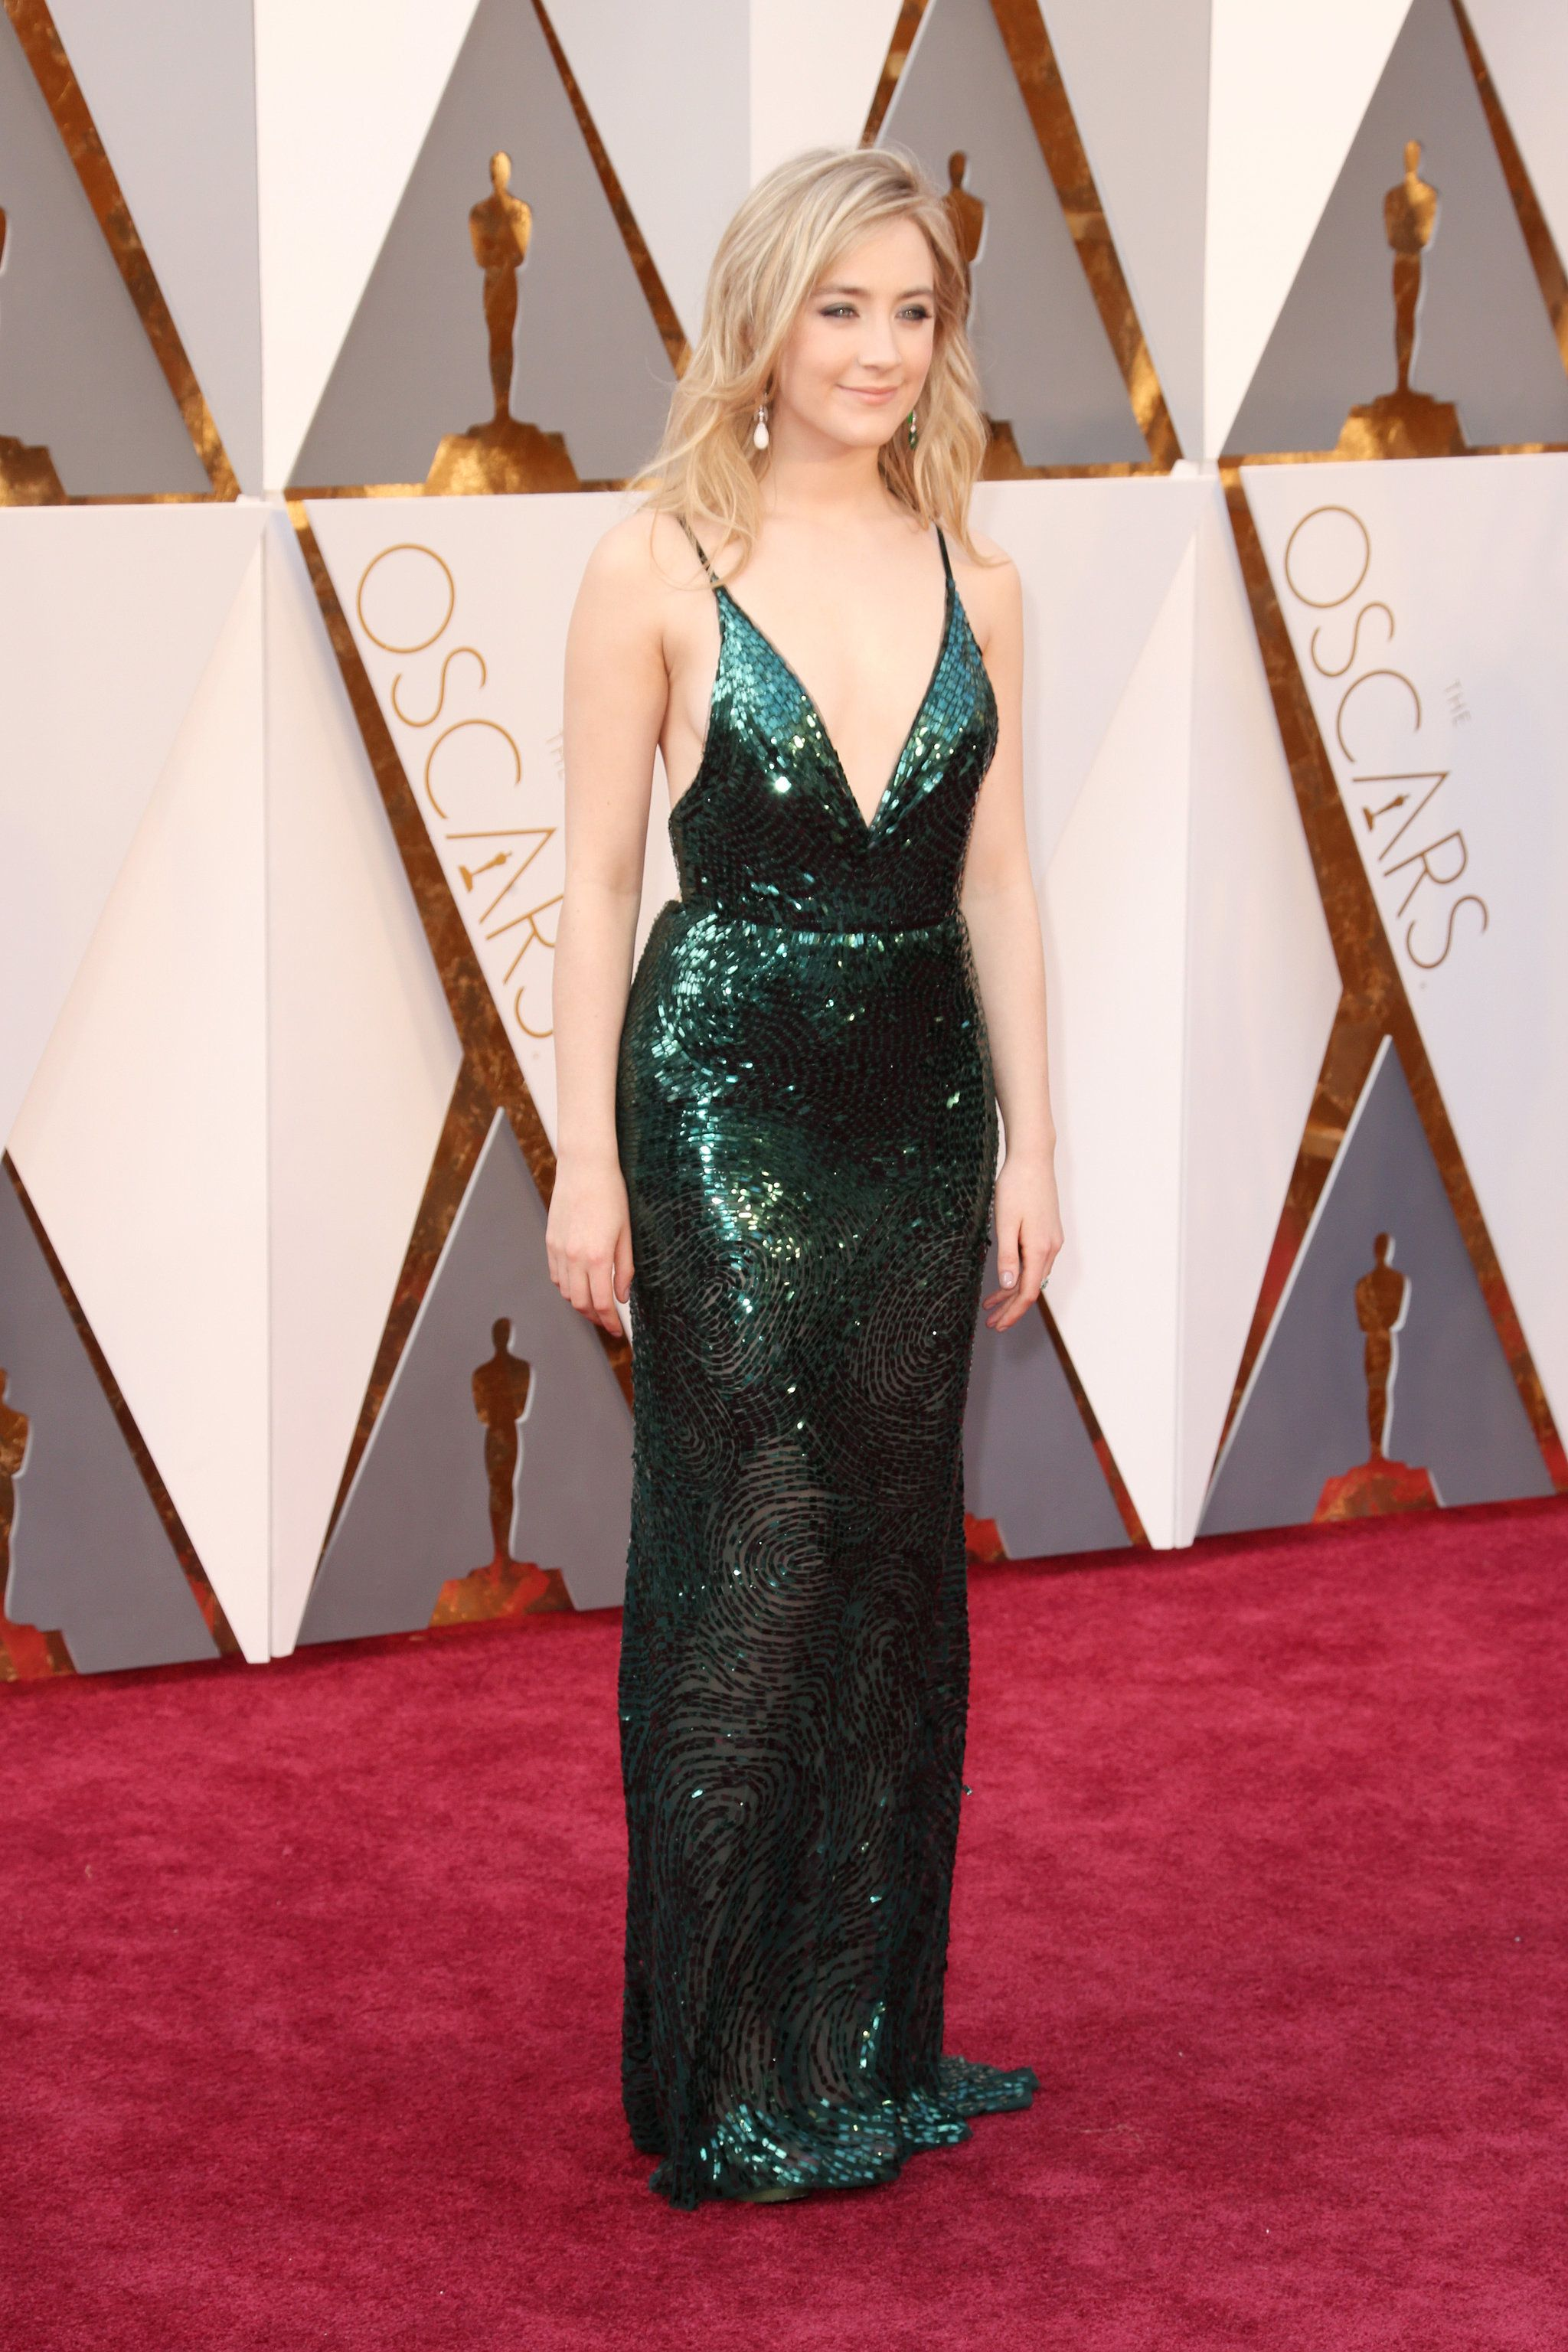 e8cd05d0d5 Saoirse Ronan Is a Sexy Siren in Her Glittering Green Oscars Dress